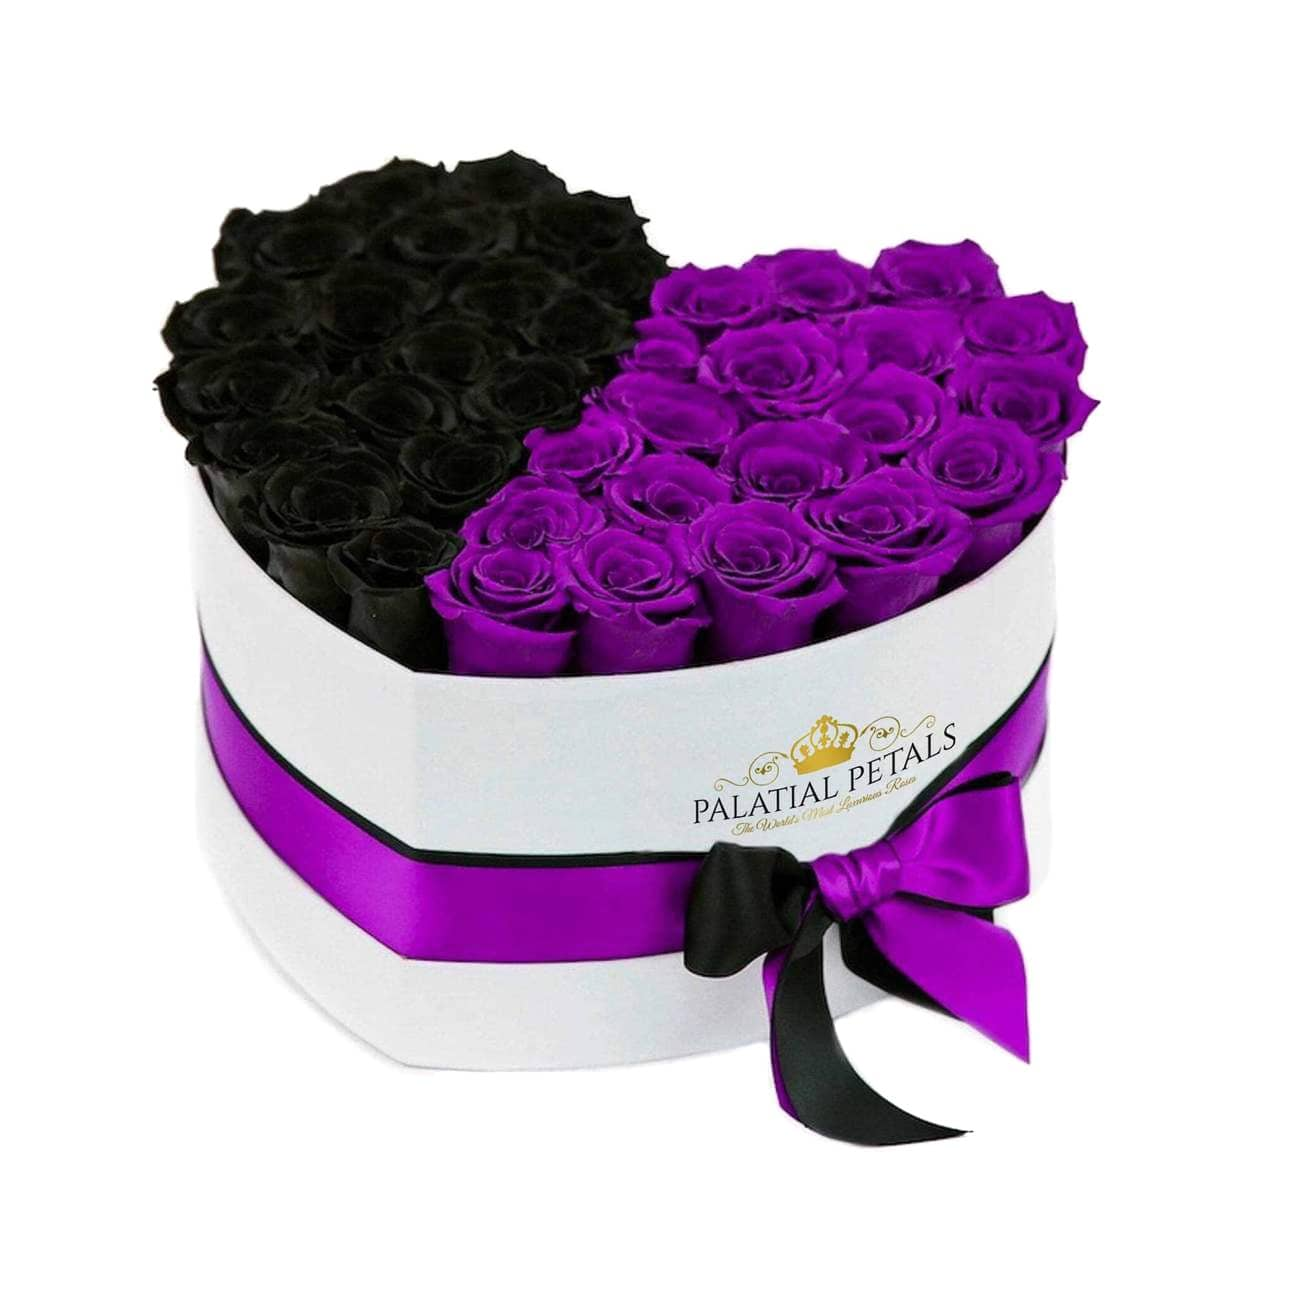 Black & Purple Roses That Last A Year - Love Heart Box